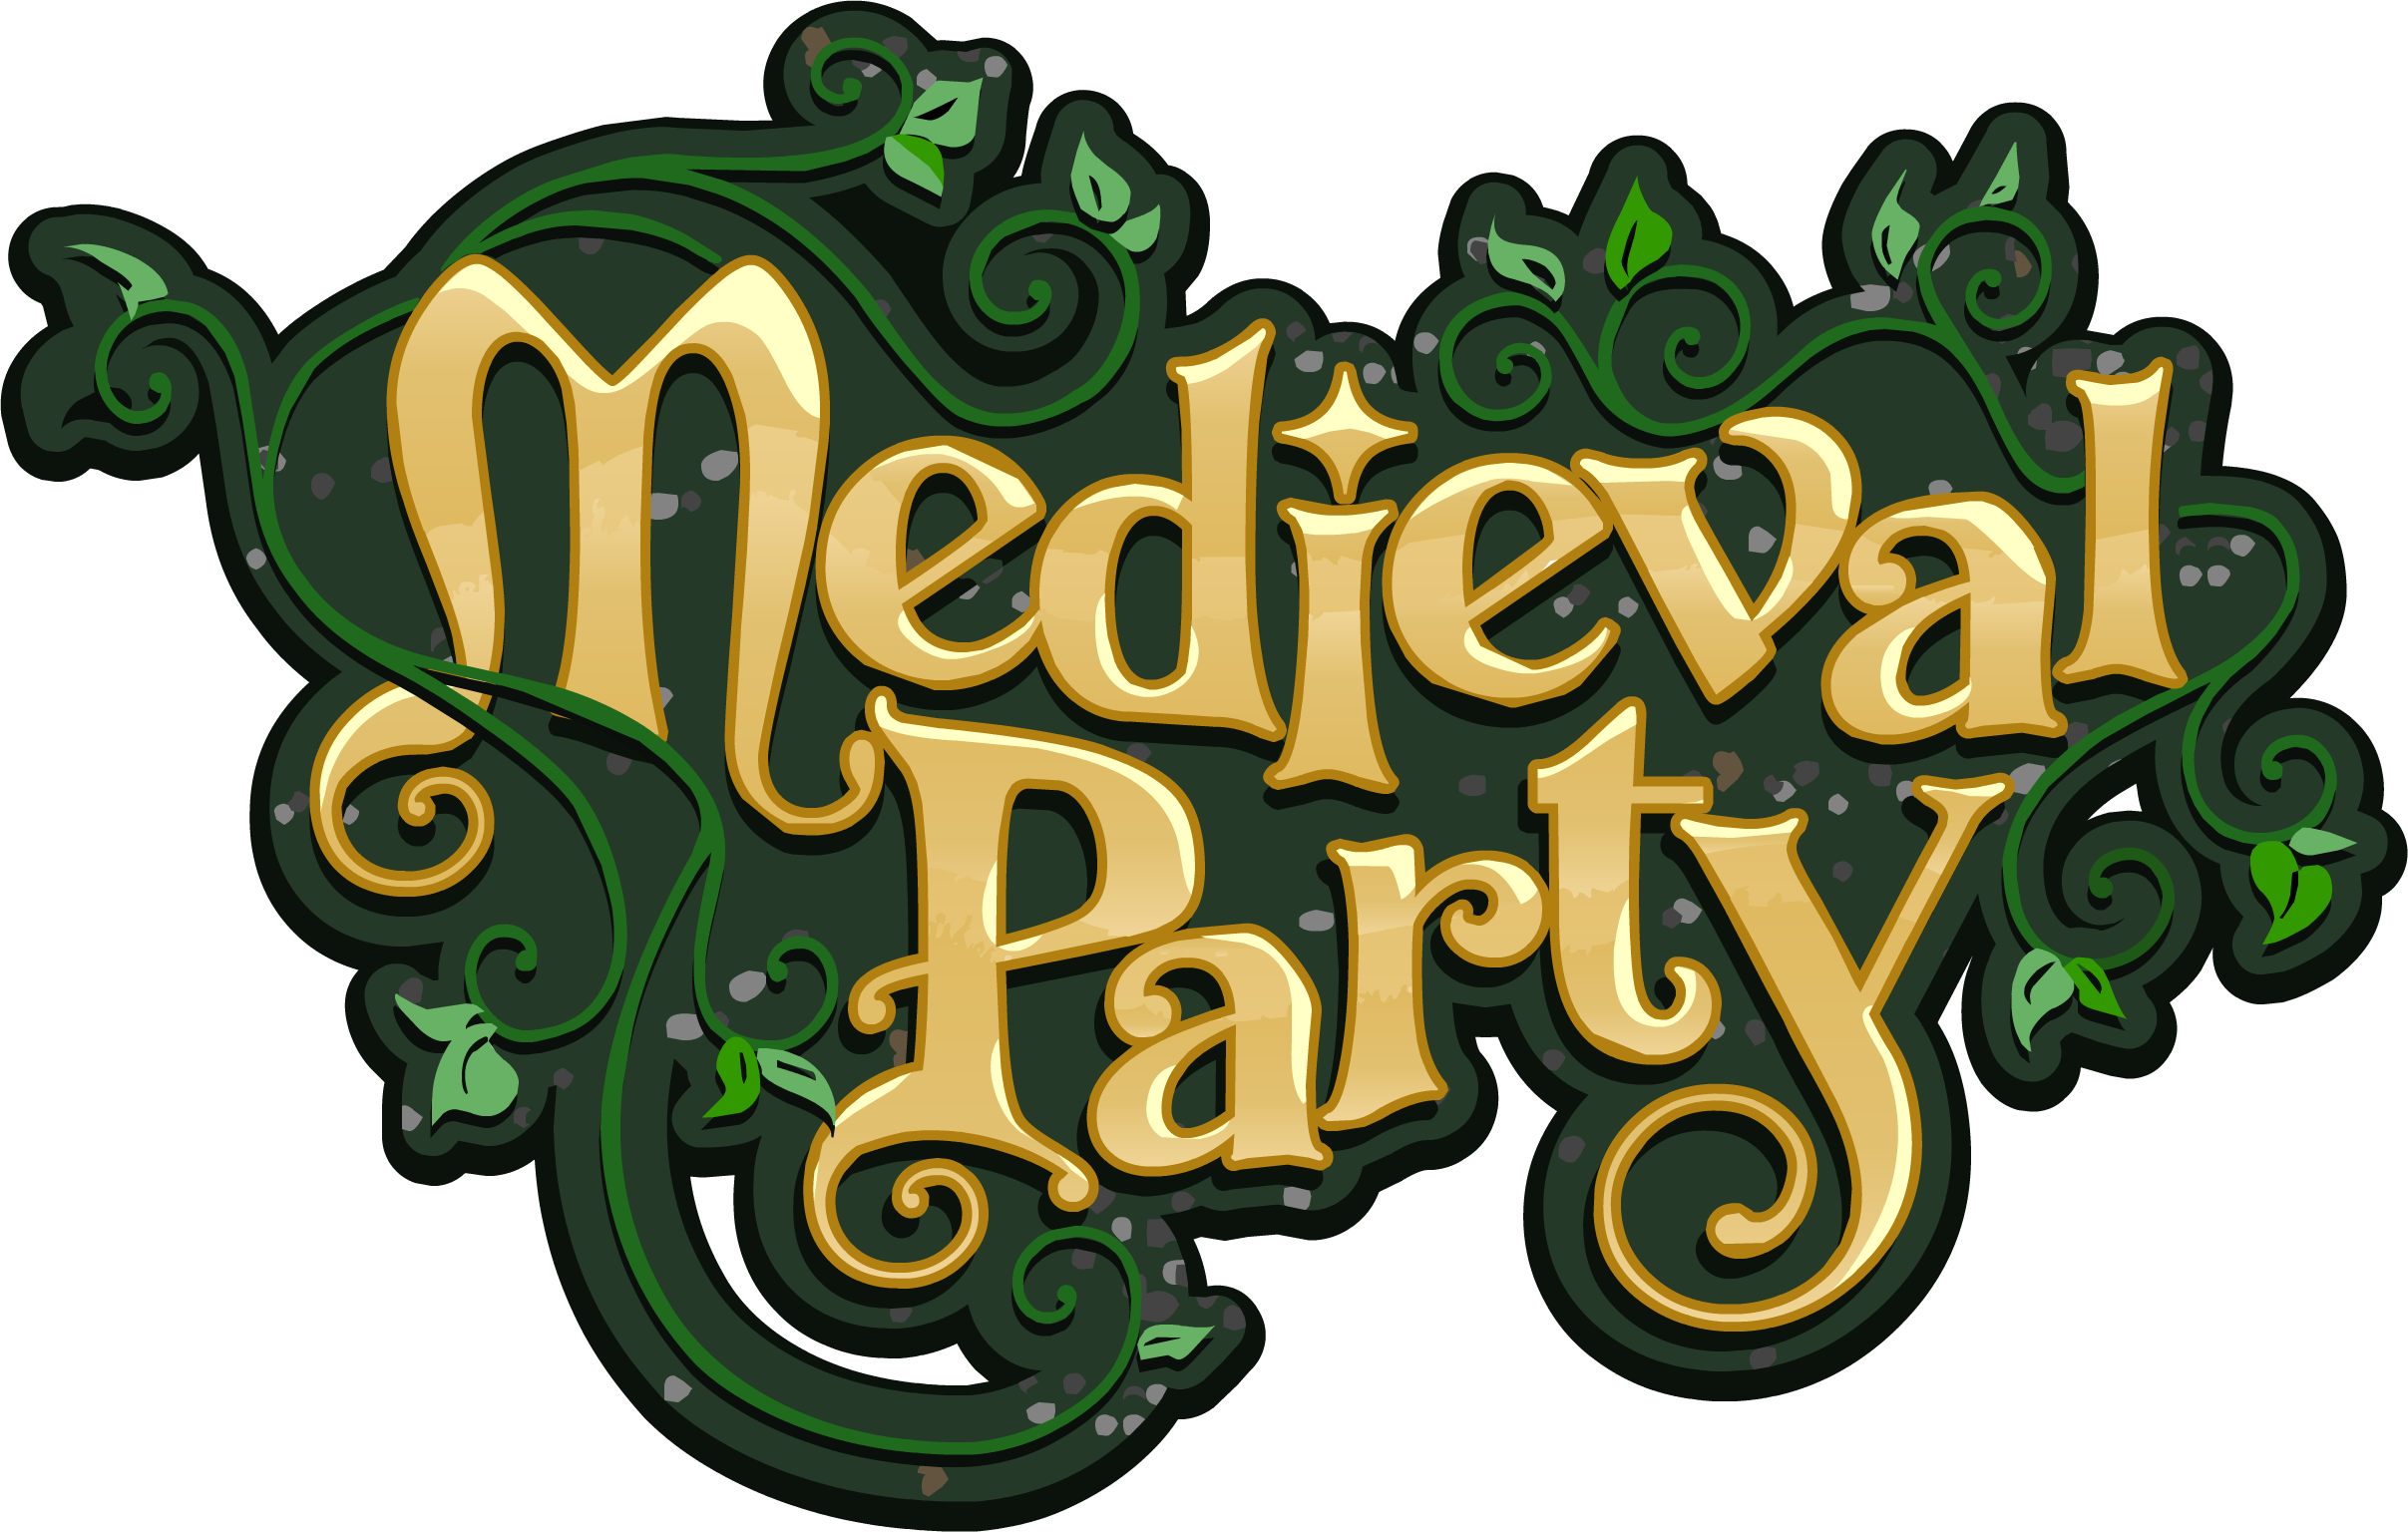 Medieval Party 2017